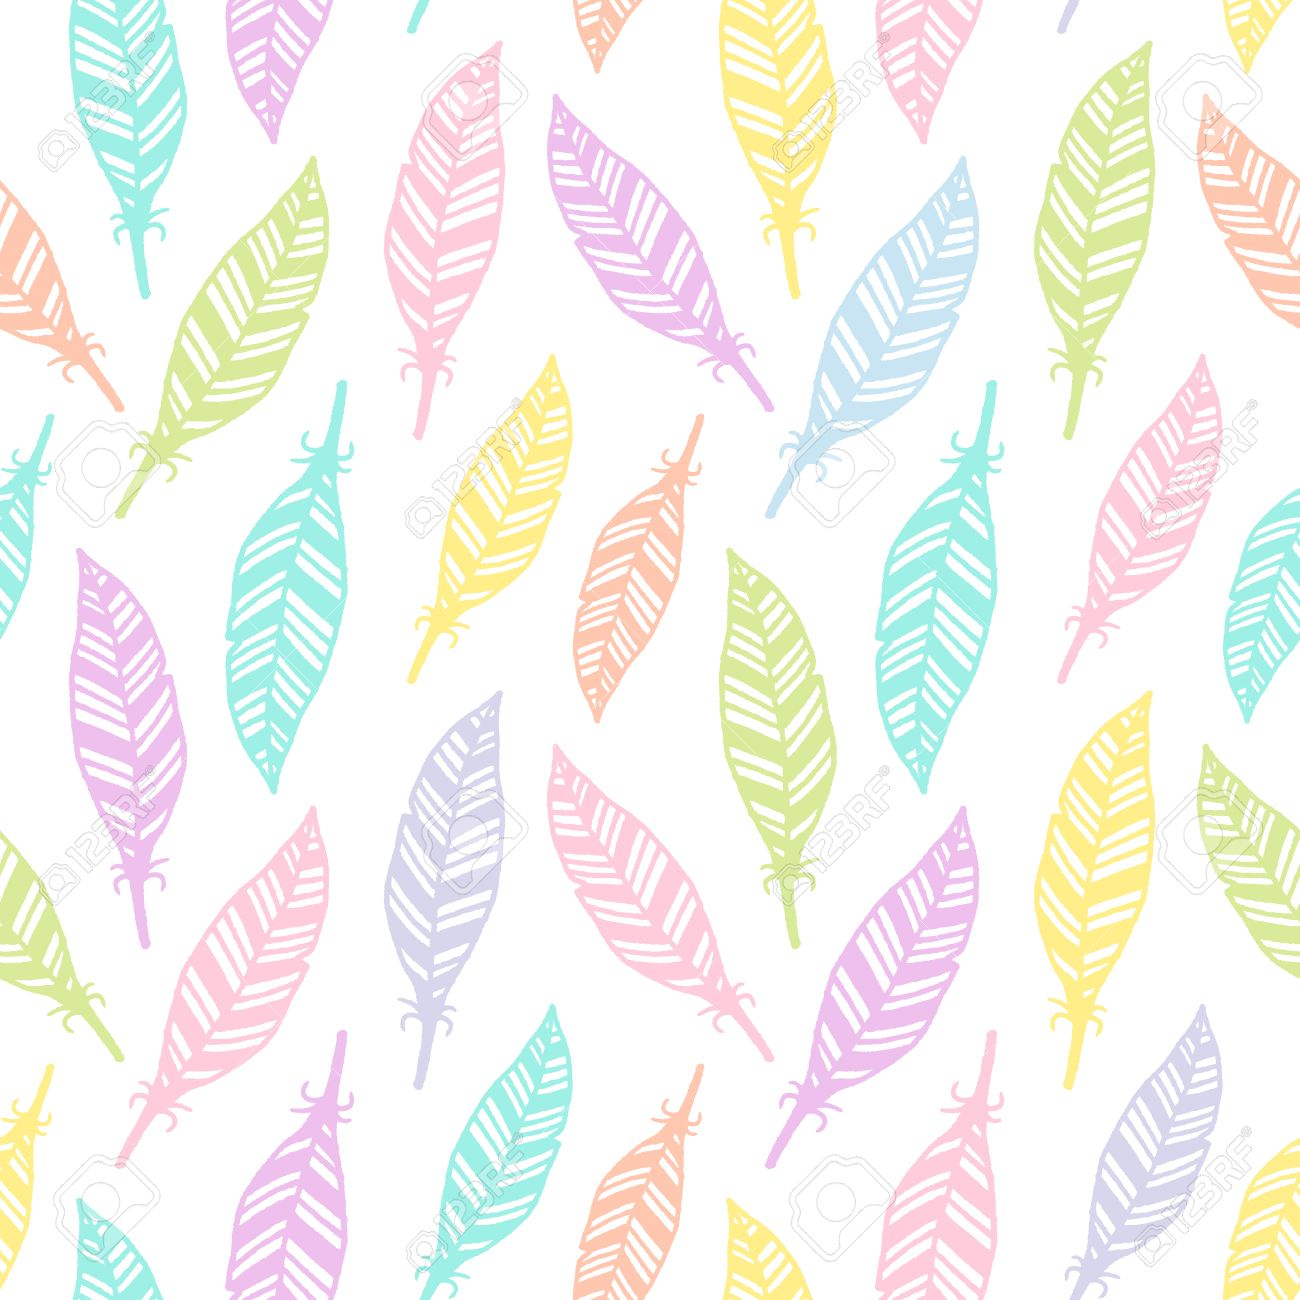 Hand Drawn Feather Seamless Pattern Soft Colored For Wrapping Paper Textile